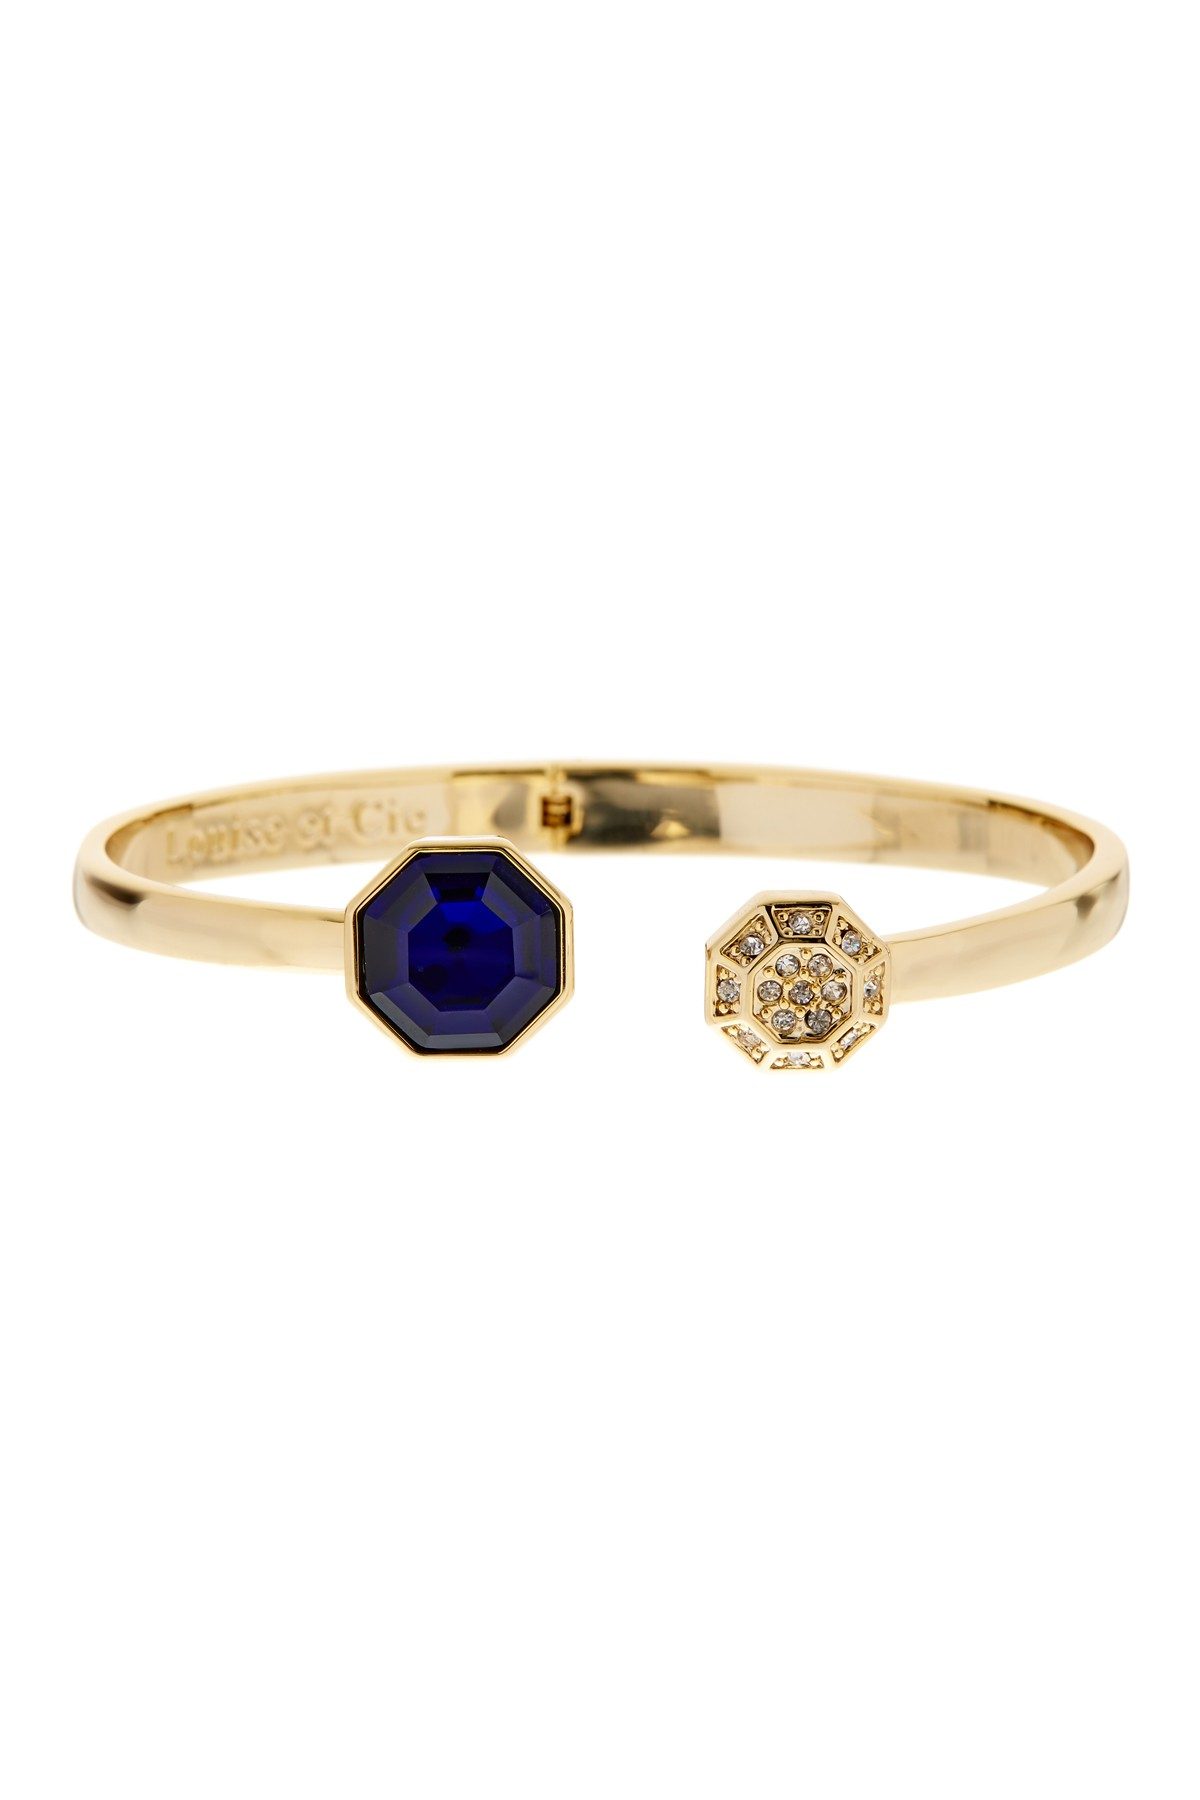 Louise et Cie Jewelry Double octagon Hinged Bracelet ($29.97). It's time to celebrate Momma.  Here is our Nordie's gift guide for items under $50! (Image: Nordstrom)